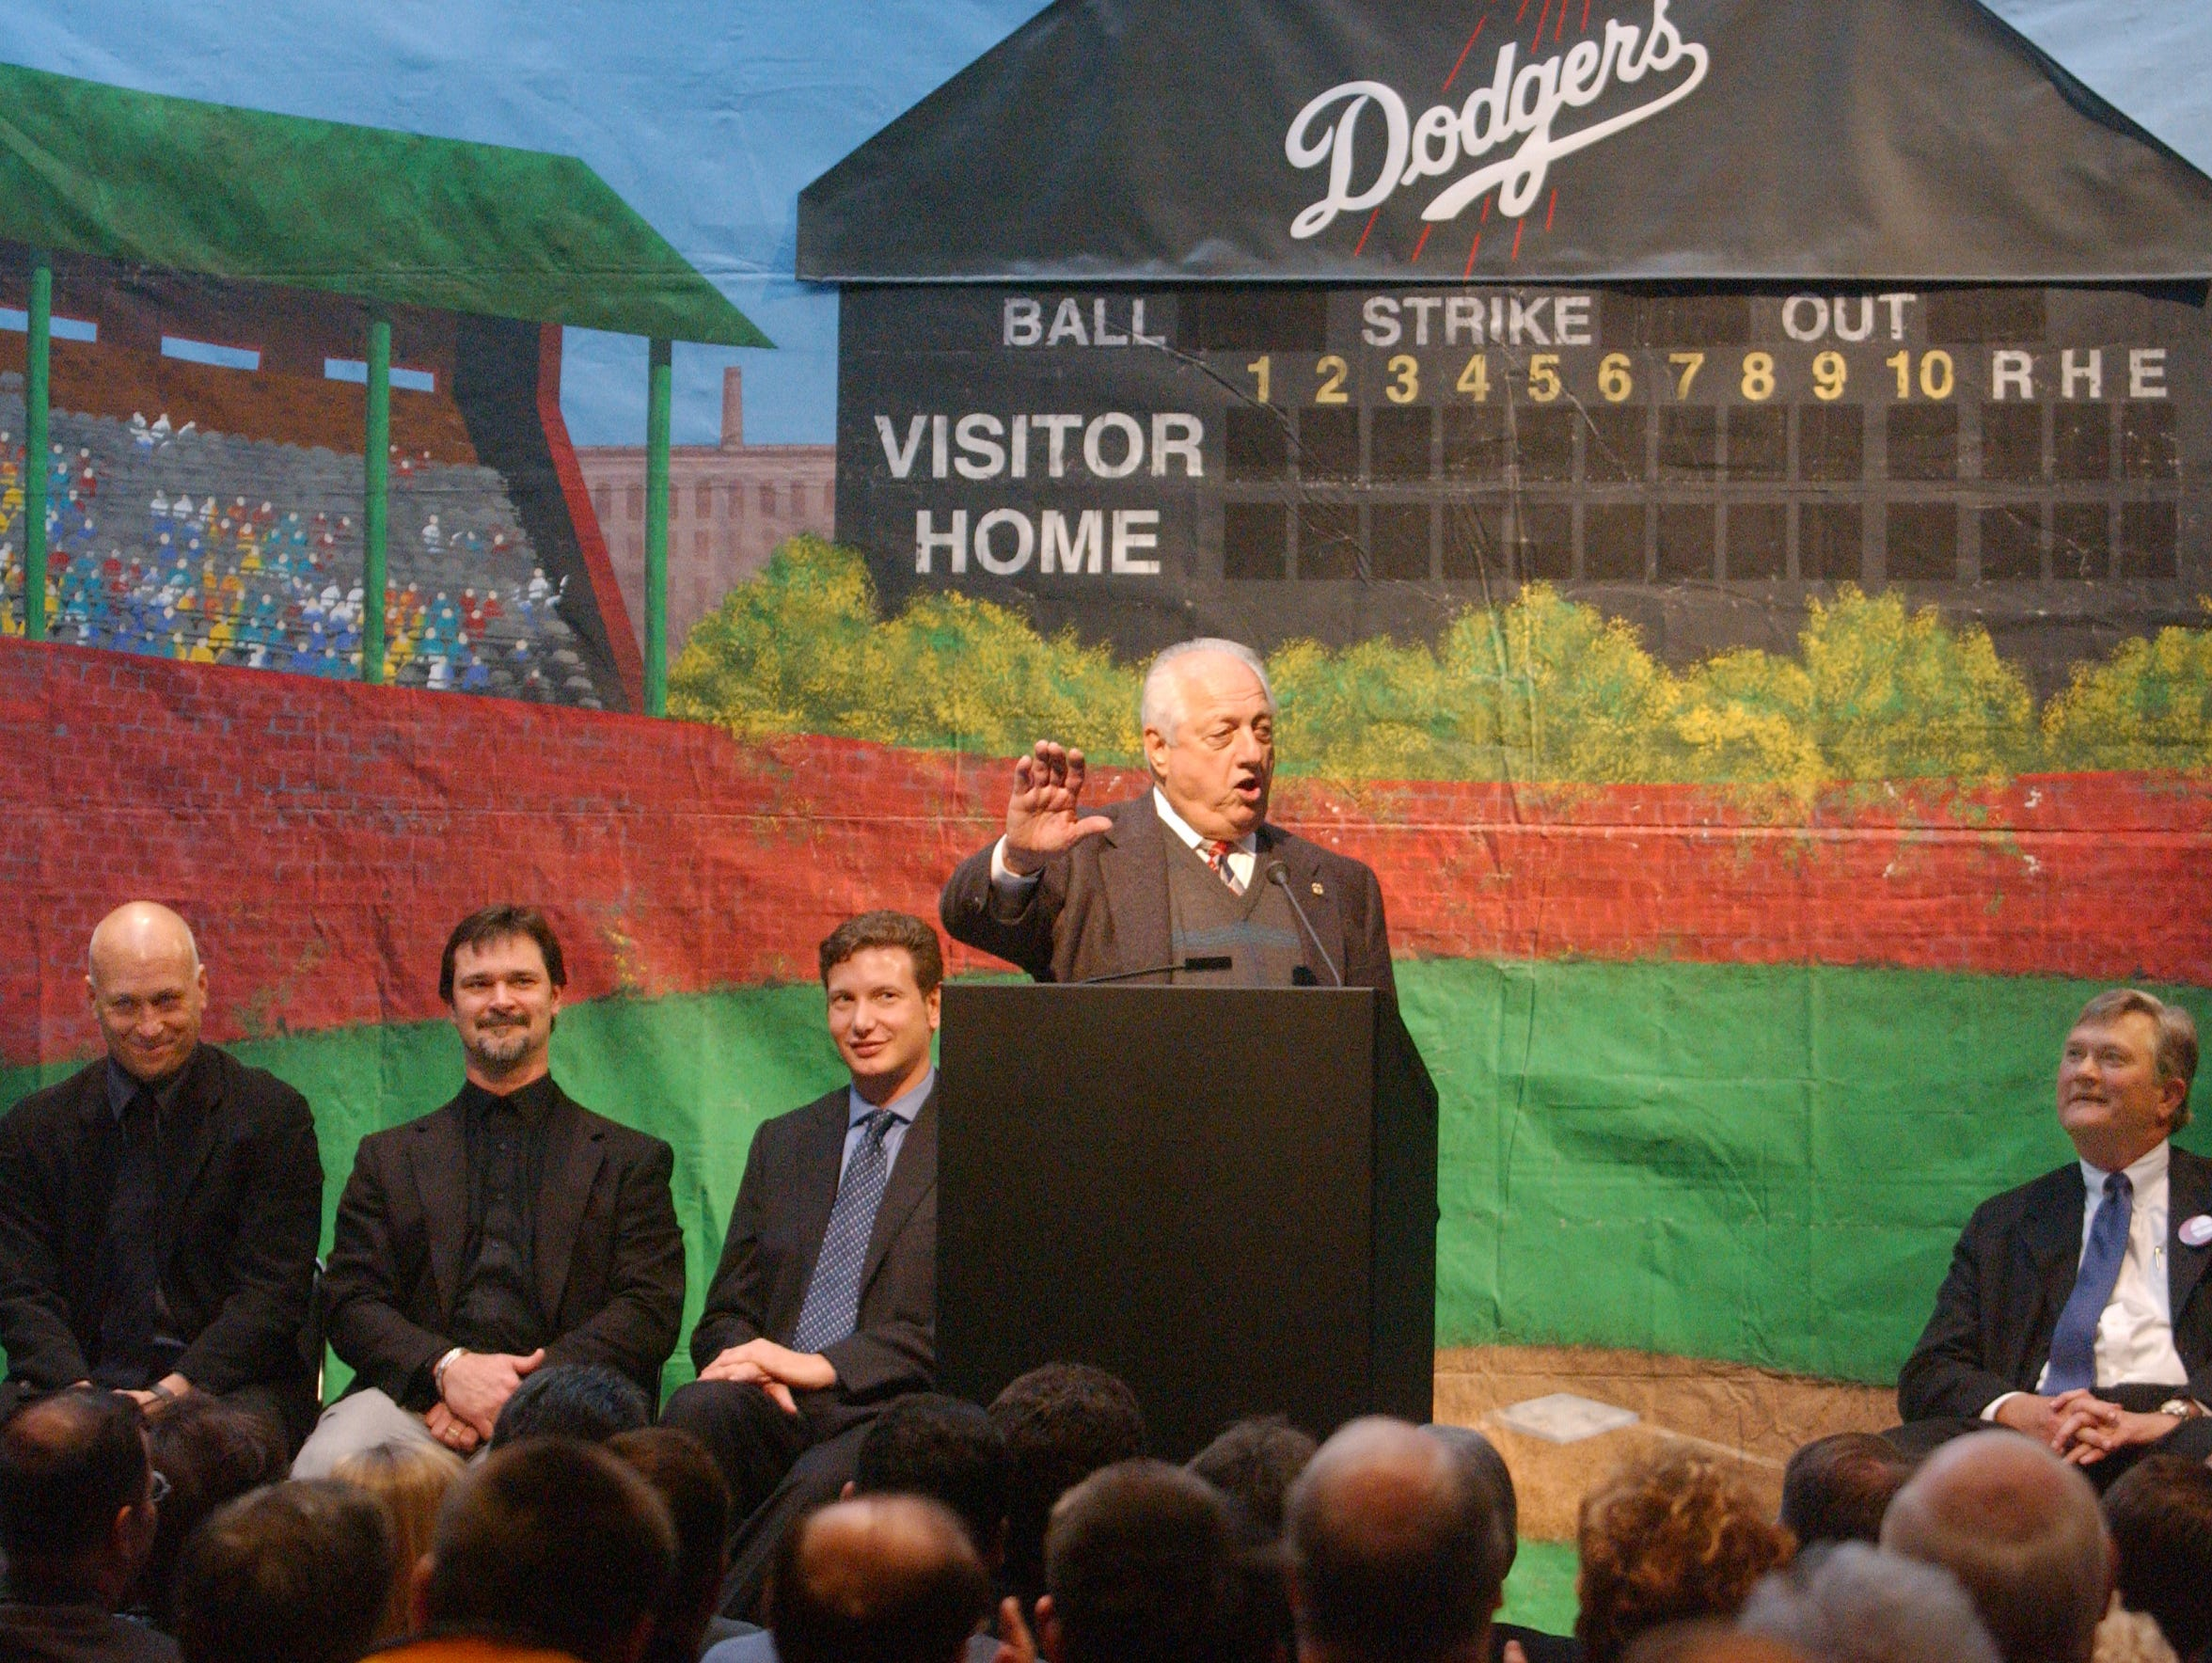 Tommy Lasorda entertains the crowd during a large press